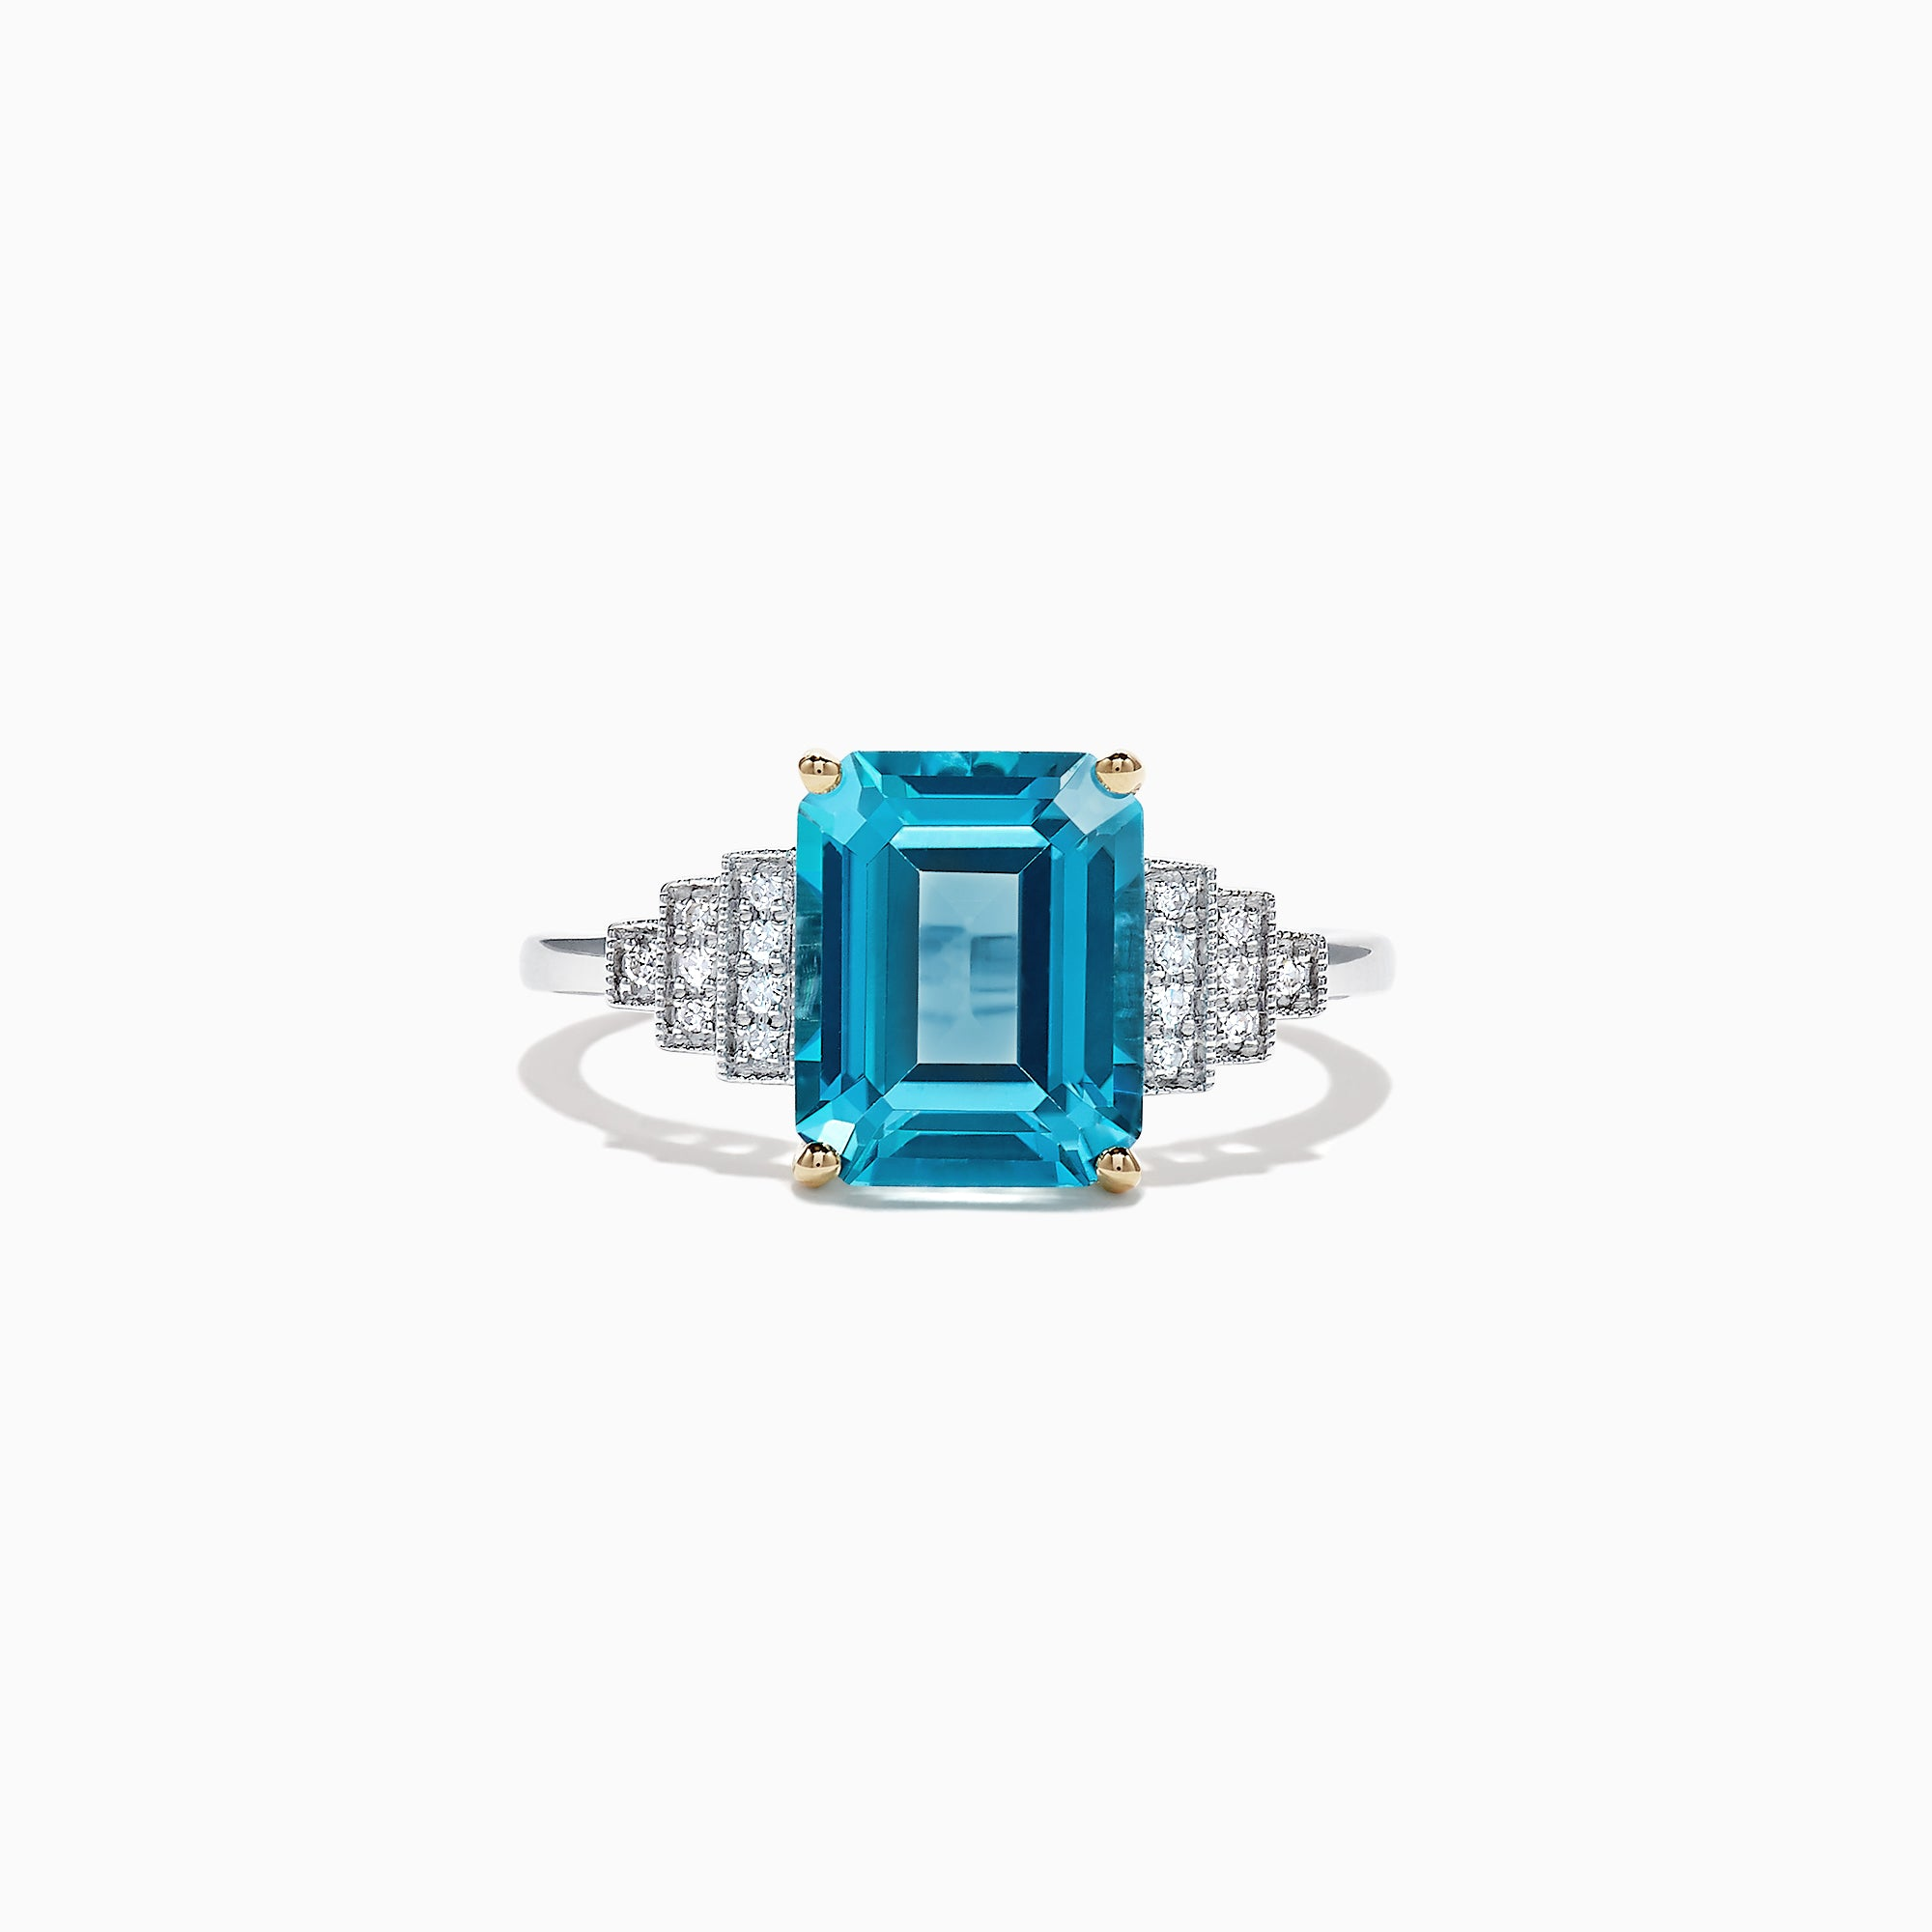 Effy Ocean Bleu 14K Two Tone Gold Blue Topaz and Diamond Ring, 3.97 TCW